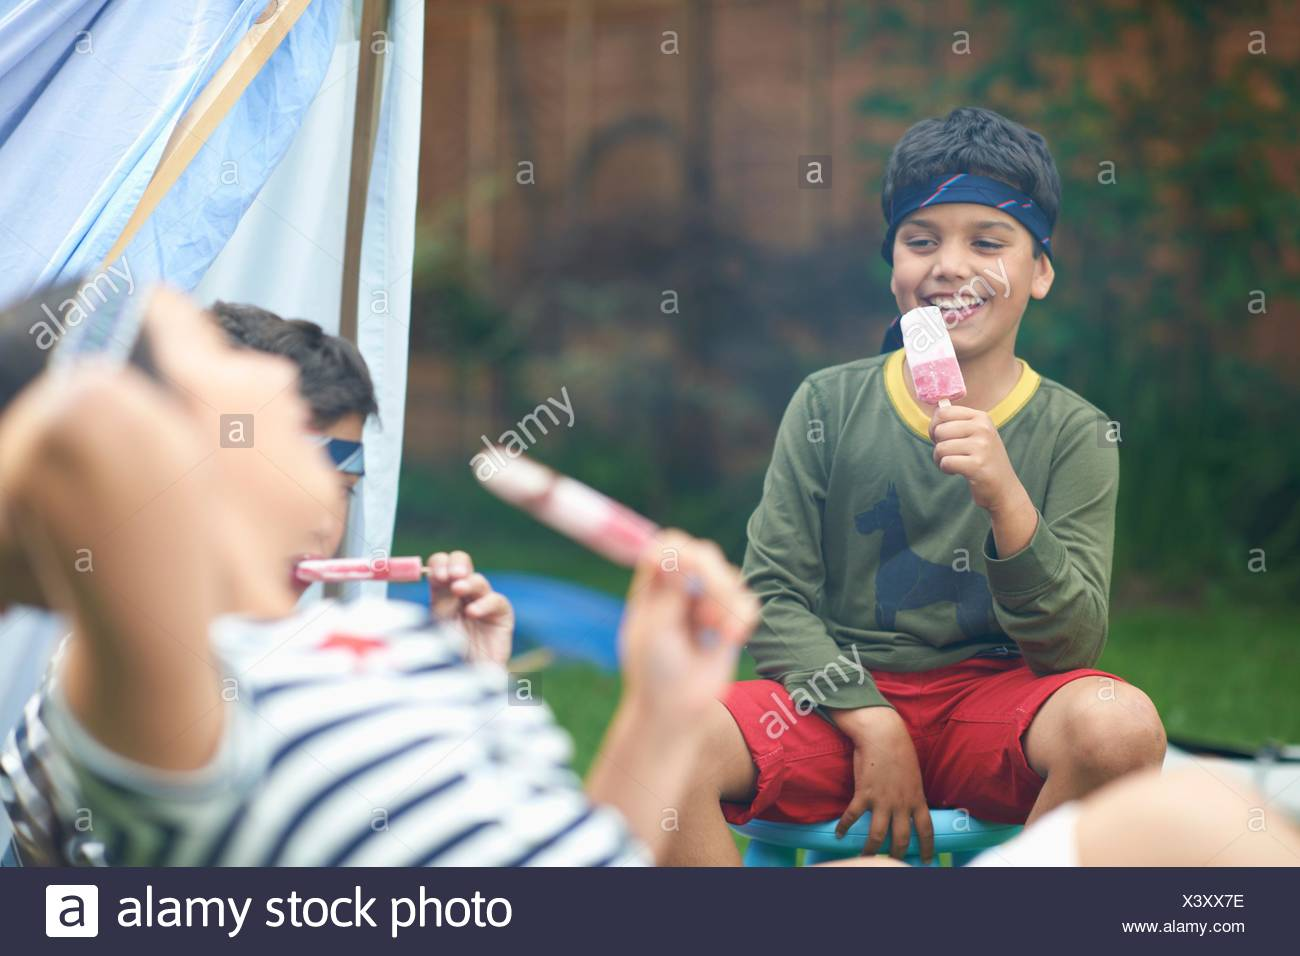 Girl and two brothers eating ice lollies in garden Stock Photo